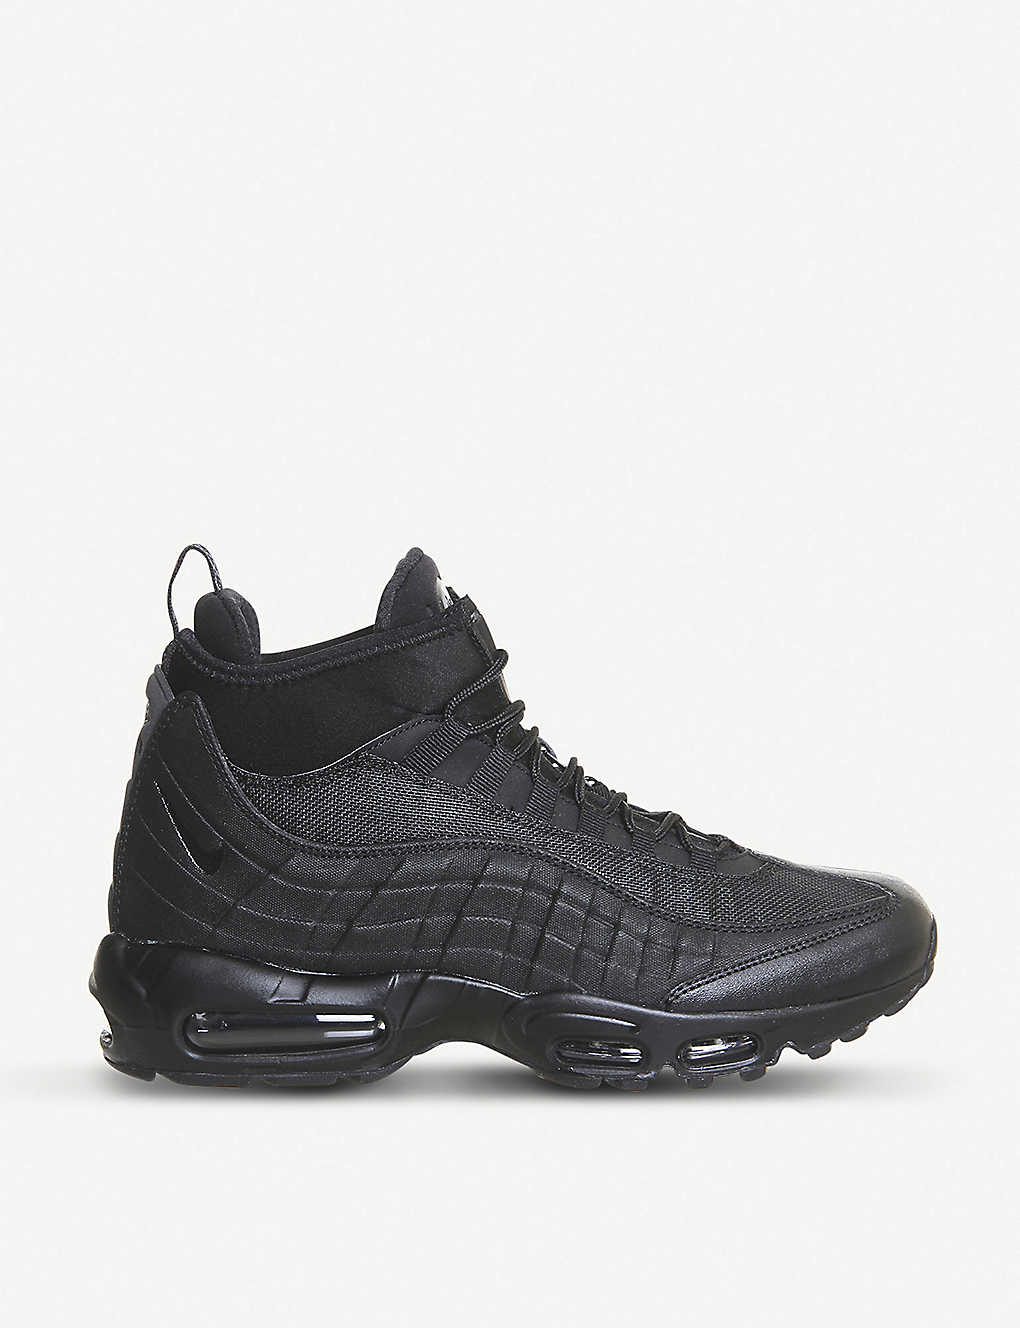 NIKE - Air Max 95 SneakerBoot leather mid-top trainers  3efac2dcb4fa